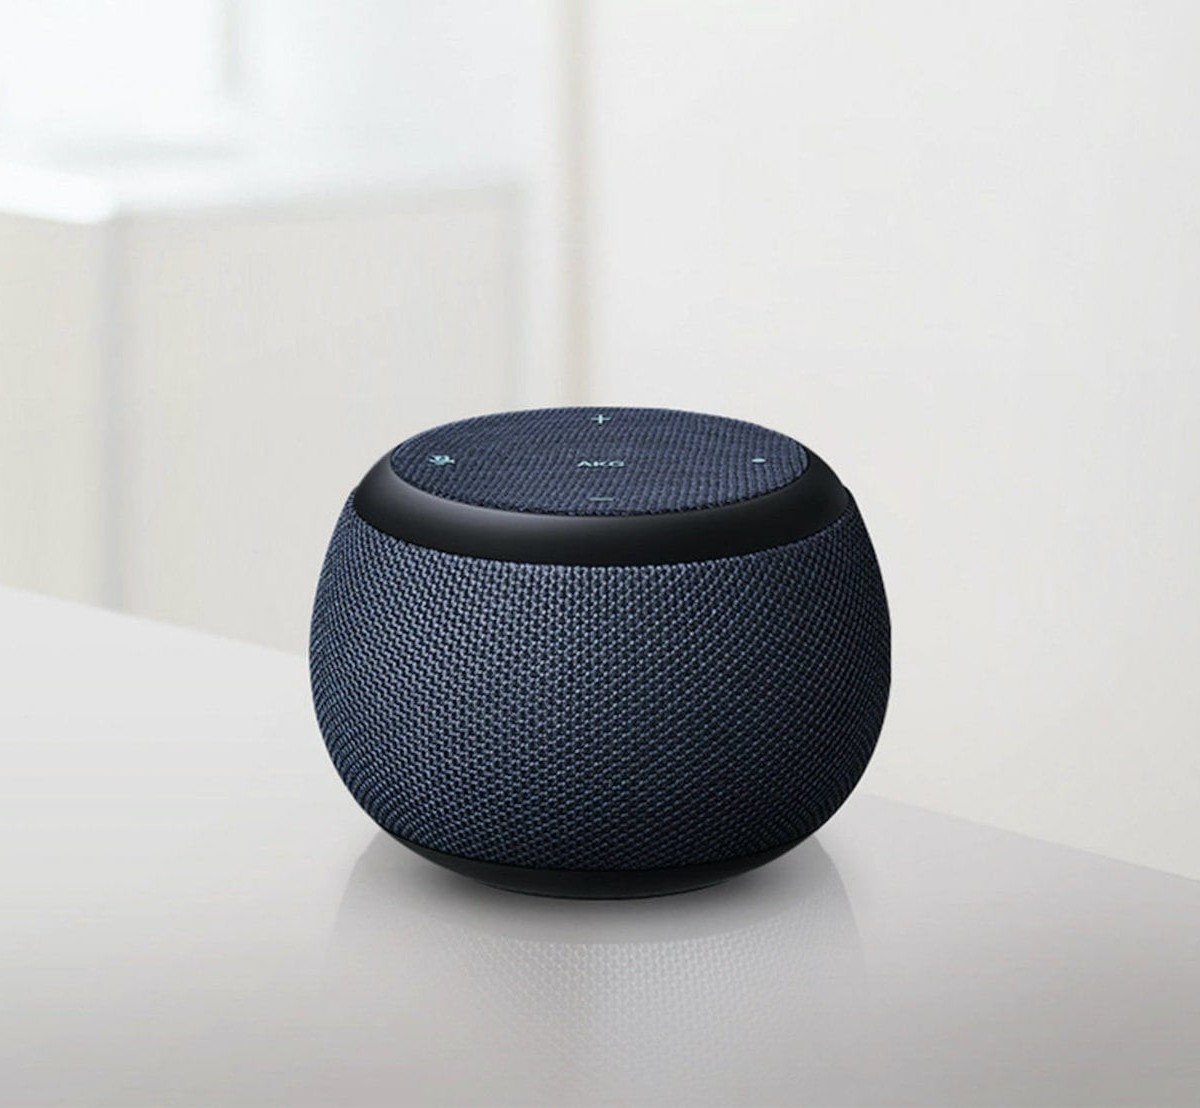 Samsung Galaxy Home Mini Smart Speaker works with Bixby to control your appliances